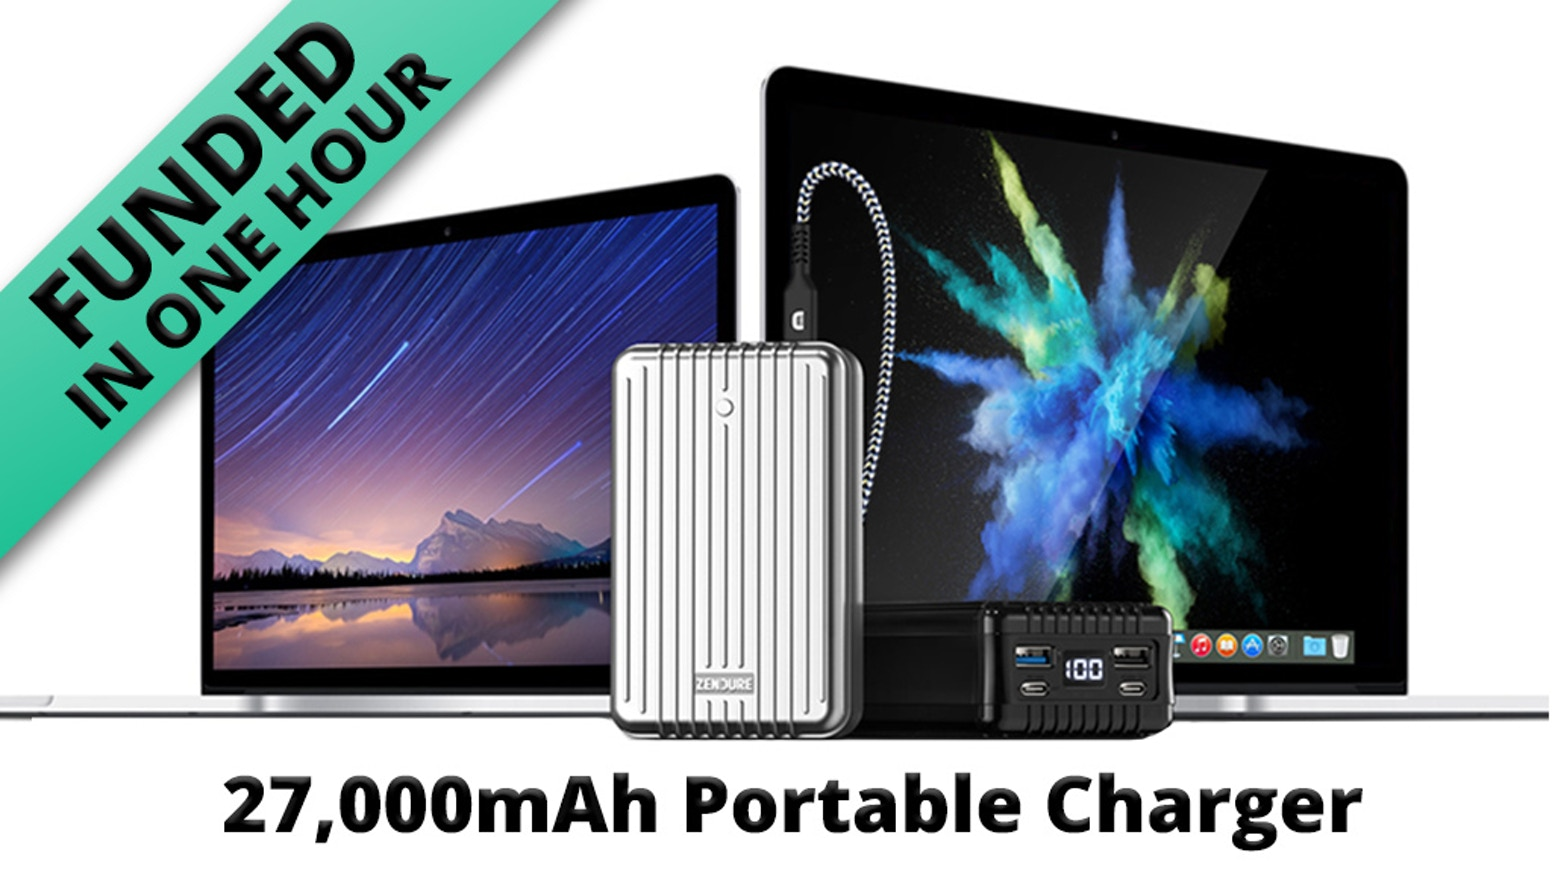 27,000 mAh portable charger with dual USB-C PD (100W + 60W) & dual USB-A ports, quickly charge MacBook Pros & other compatible devices